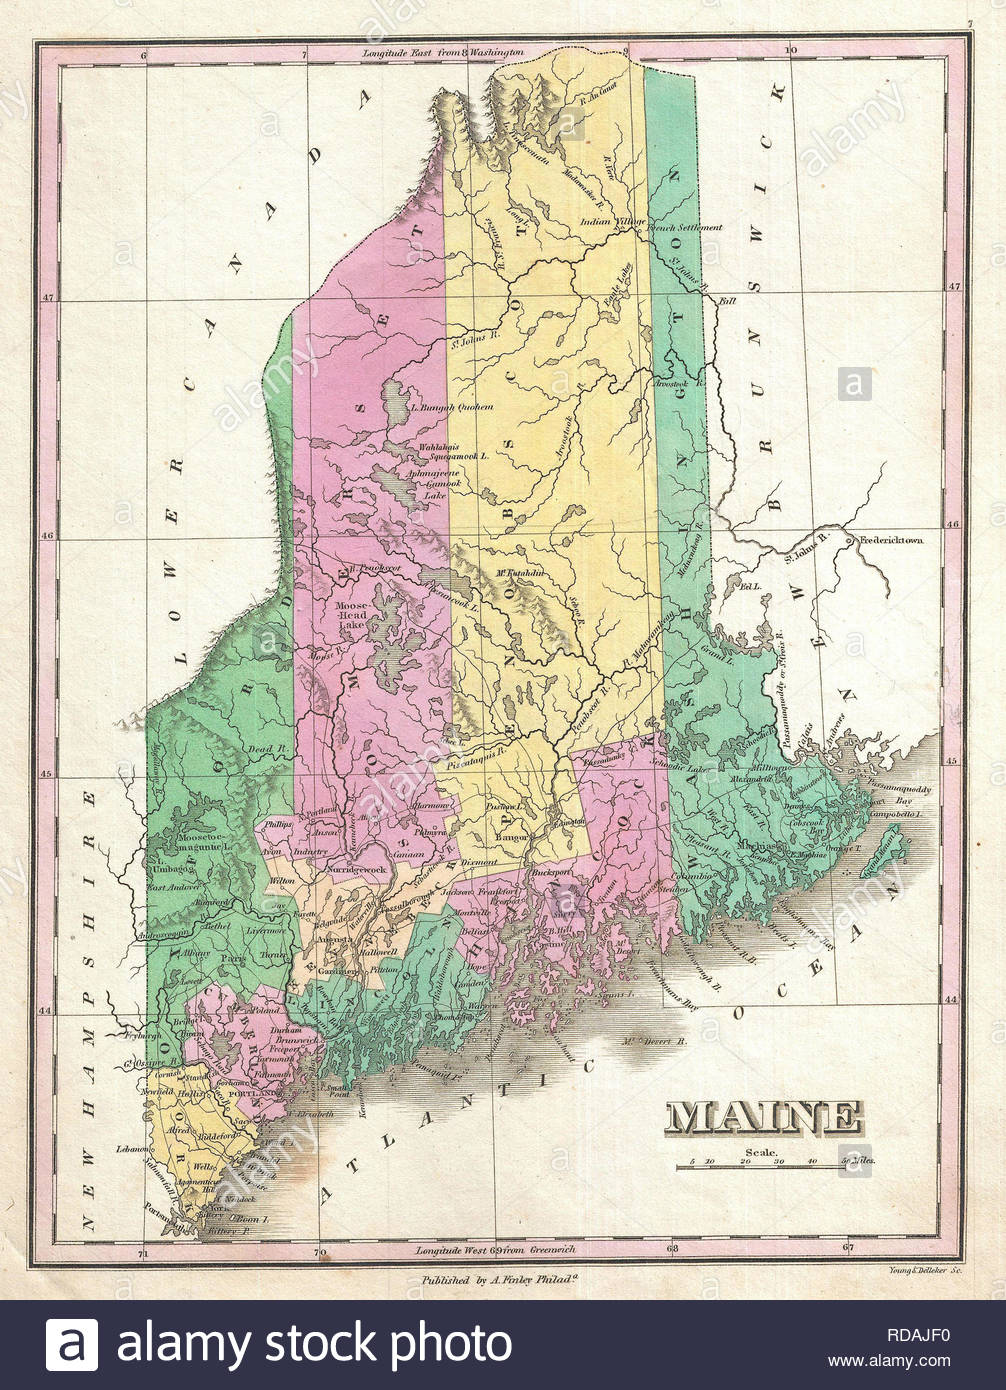 Finley Map Of Maine Stock Photos Finley Map Of Maine Stock Images